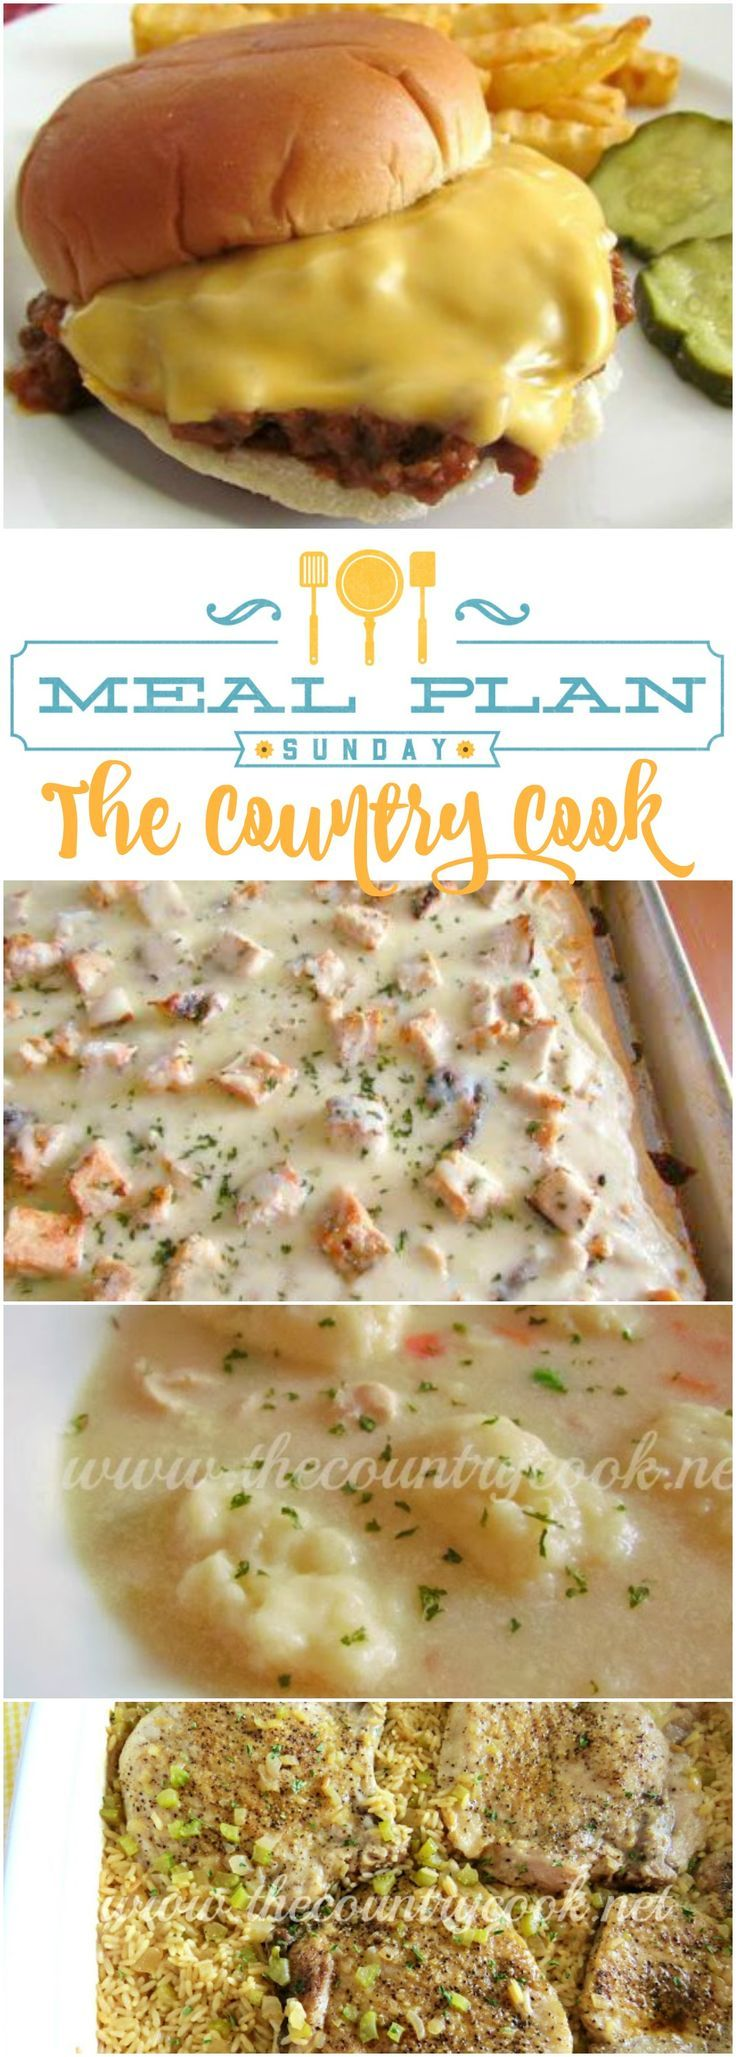 Meal Plan Sunday at The Country Cook. Featured recipes include: Homemade Crock Pot Sloppy Joes, Super Simple Grilled Chicken Alfredo Pizza, Chicken and Drop Dumplings, Baked Pork Chops & Rice, Chicken Parmesan Pizzas, Ramen Skillet Supper and desserts too